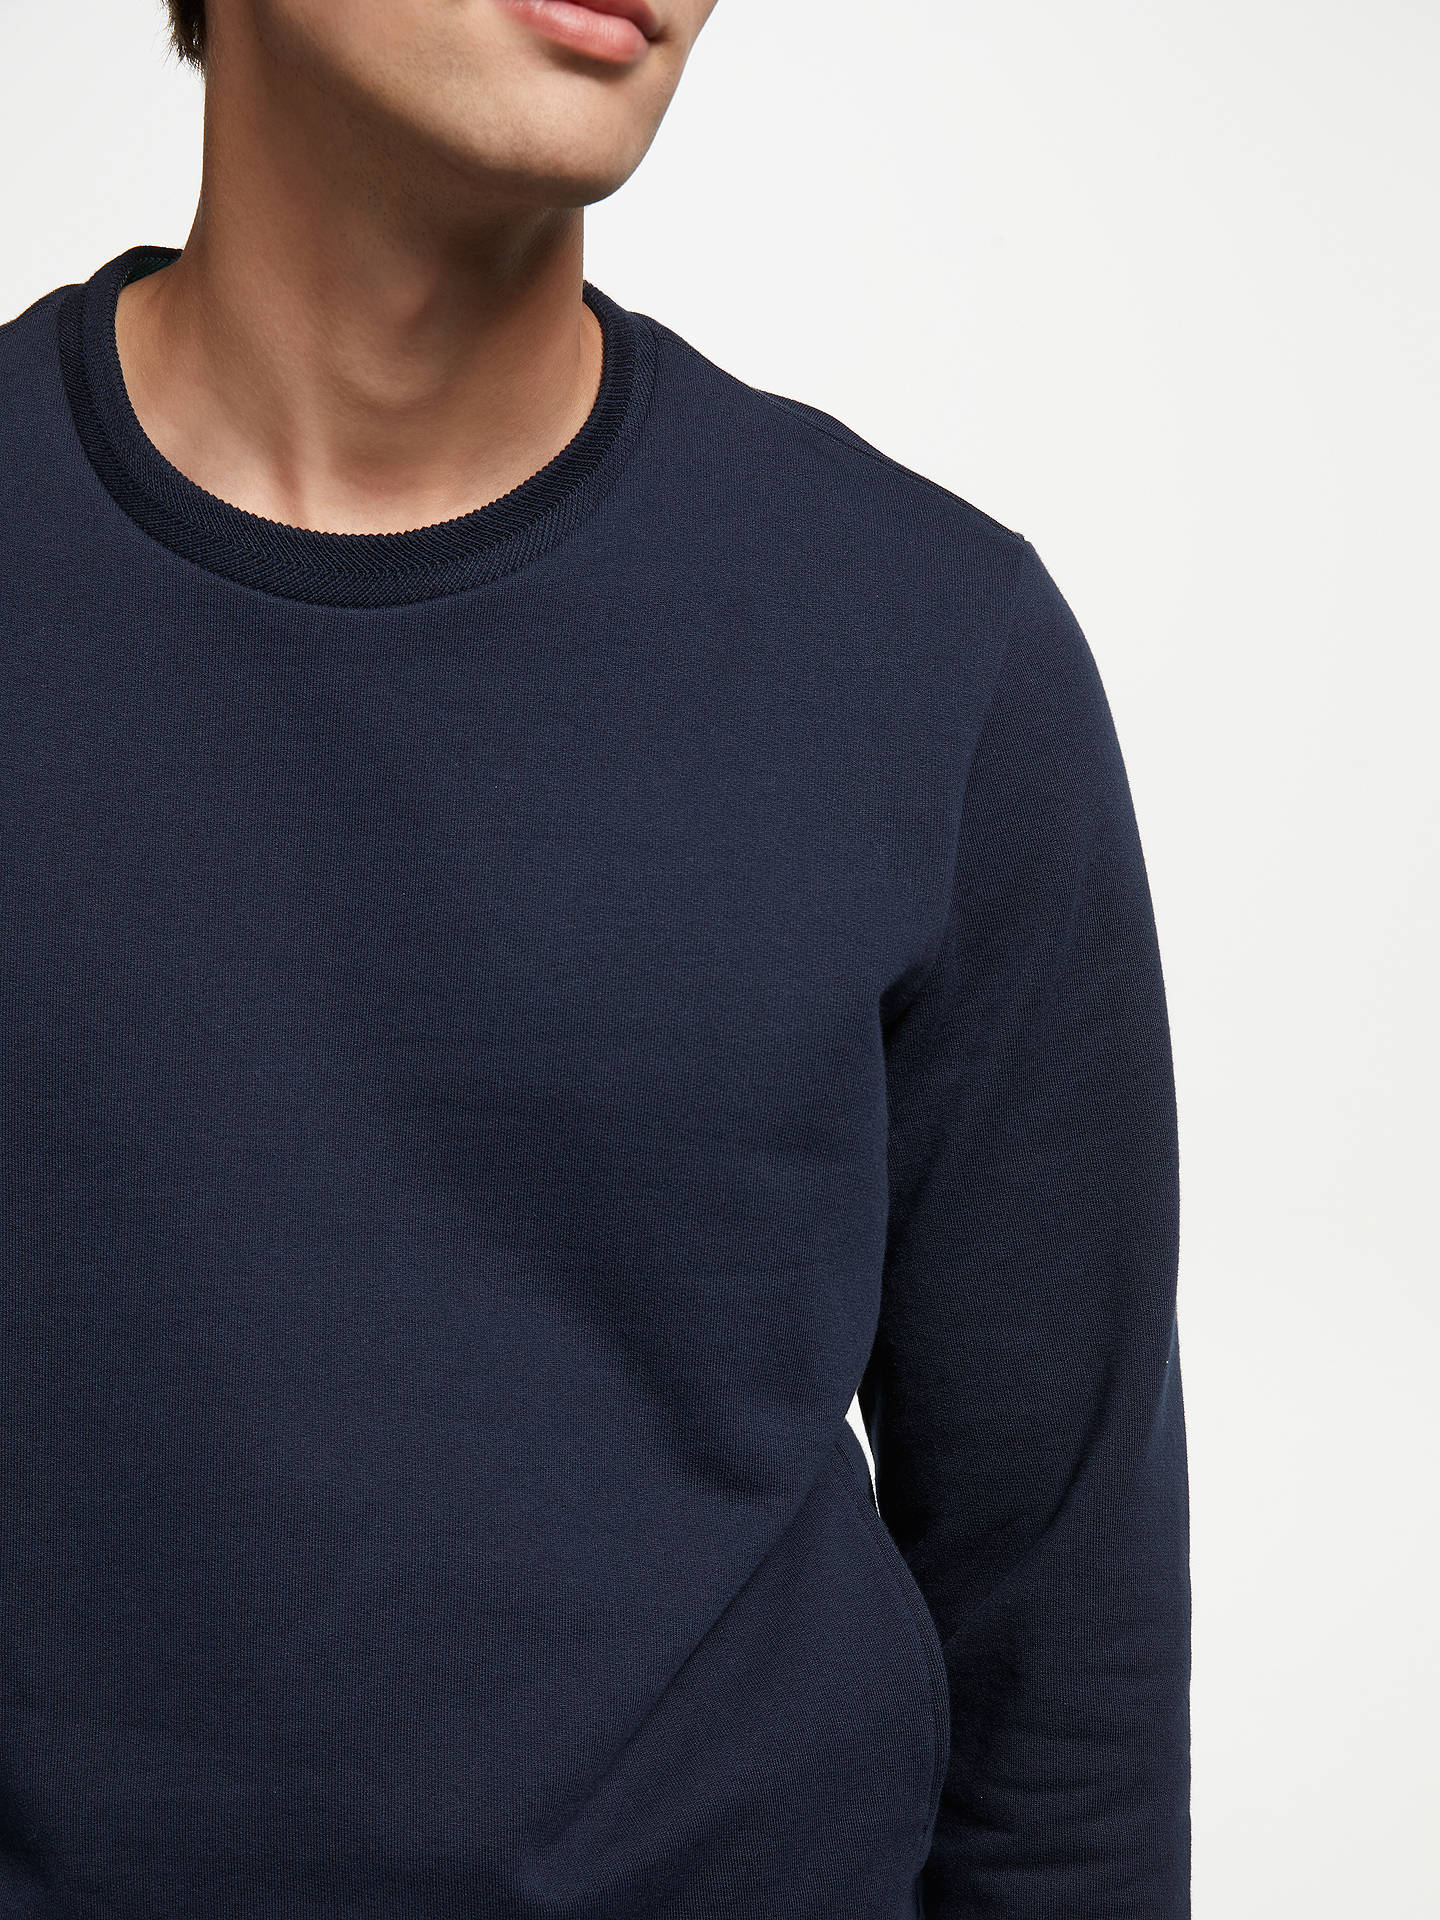 Buy John Lewis & Partners Crew Neck Sweatshirt, Navy, S Online at johnlewis.com